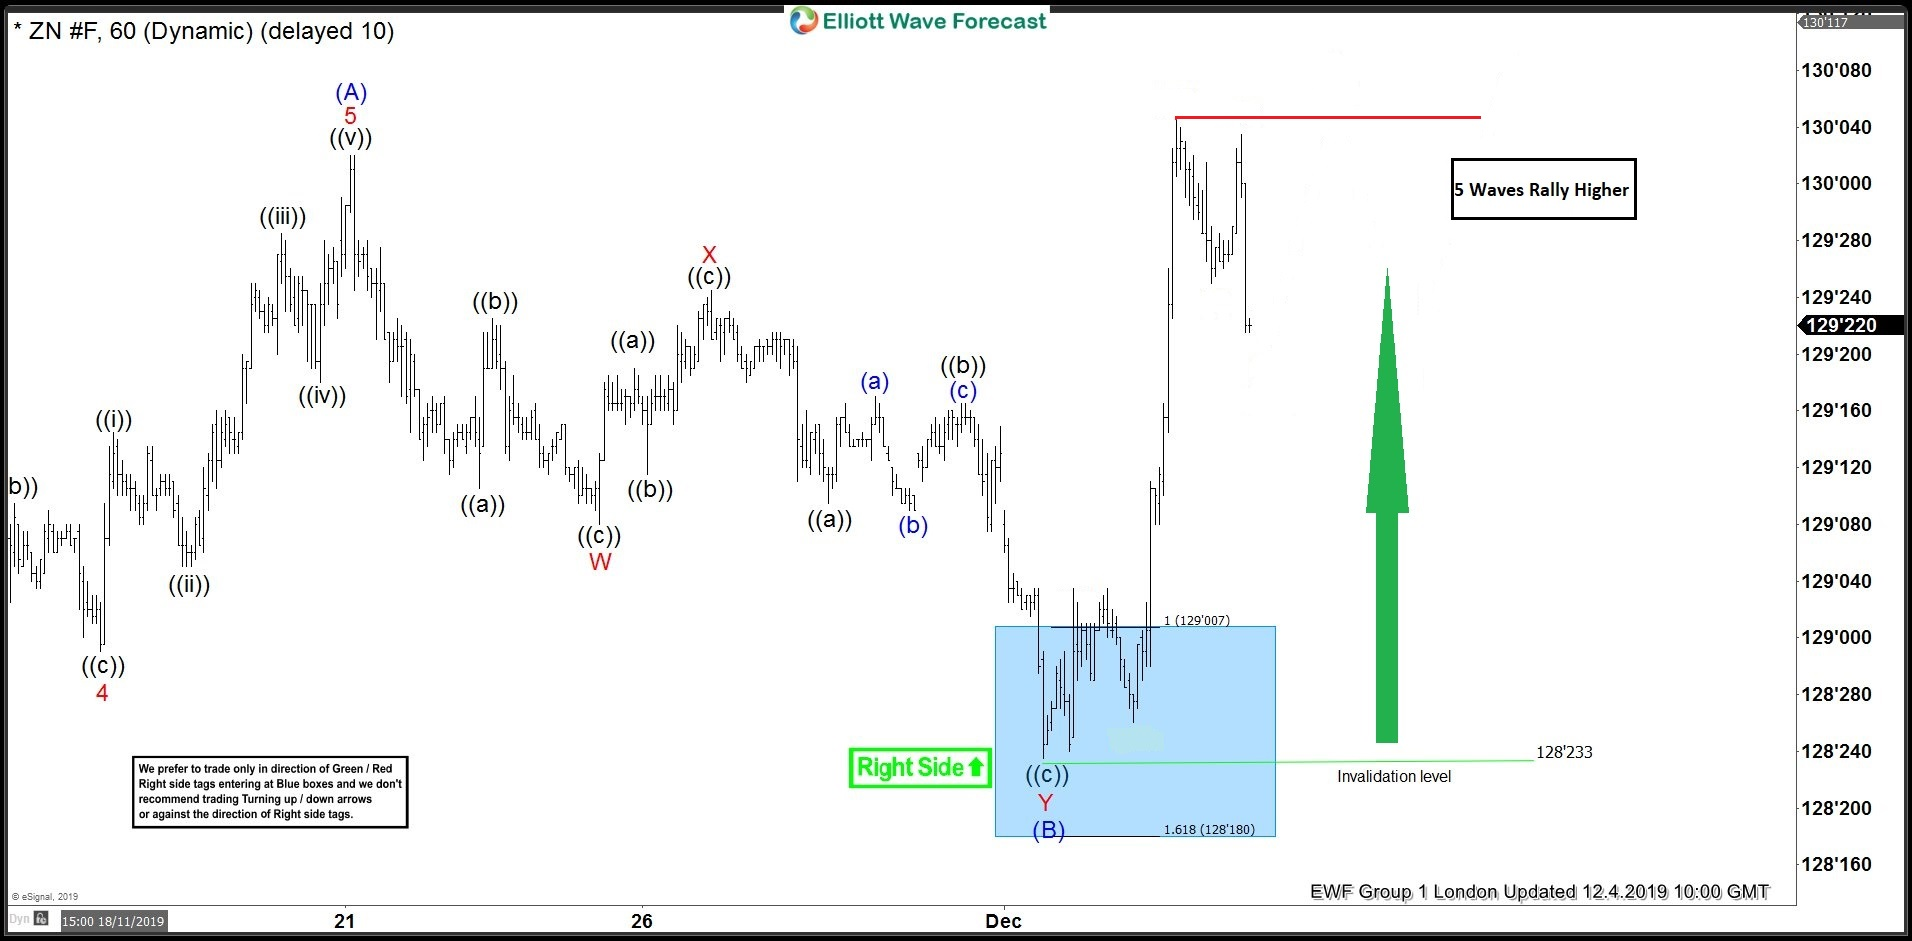 10 Year T-Note Futures: $ZN_F Forecasting Elliott Wave Path